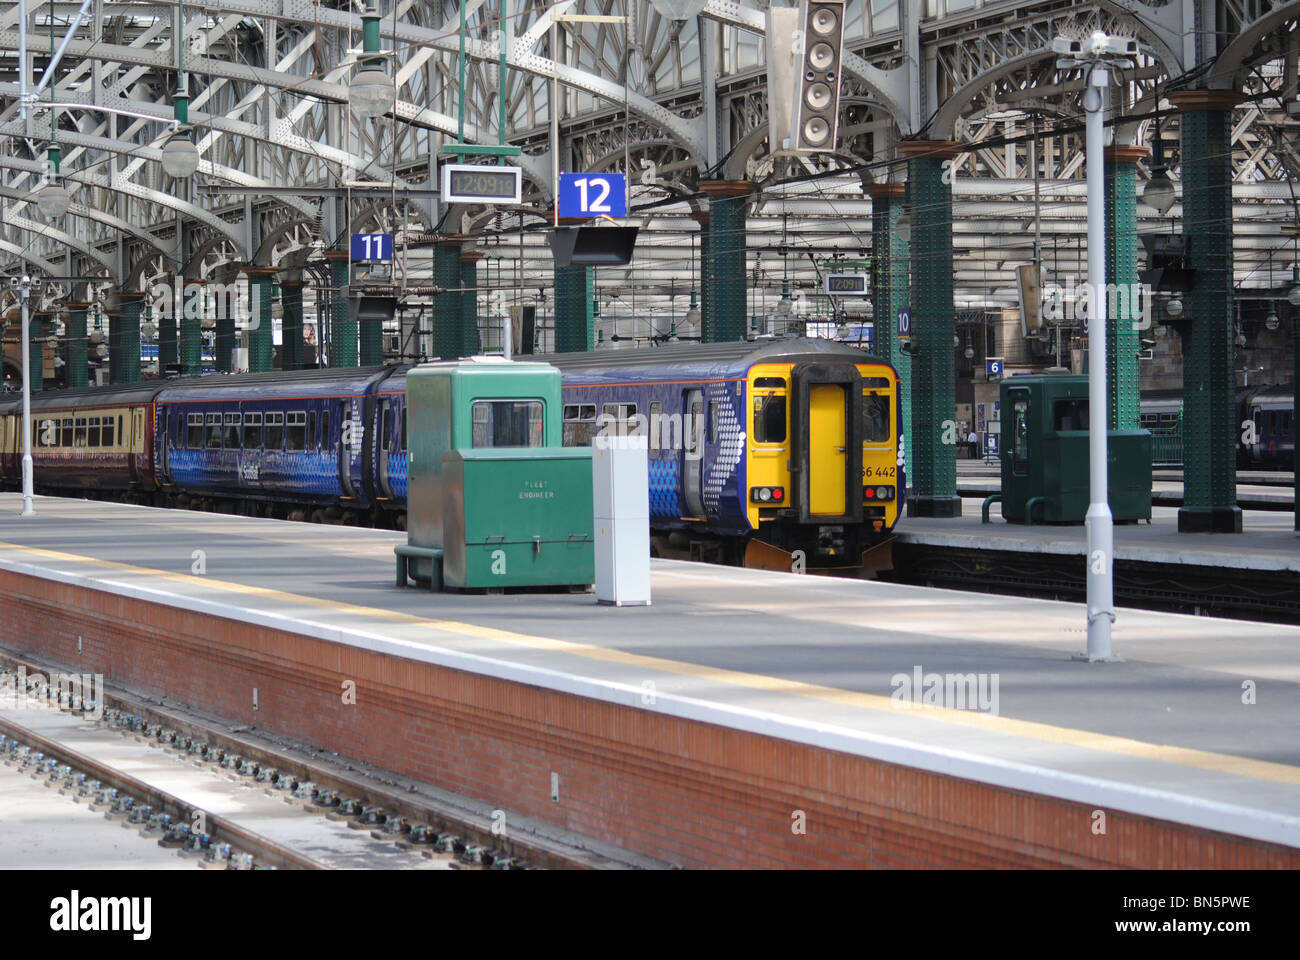 Train arriving at Platform 12 Glasgow Central Railway Station. - Stock Image